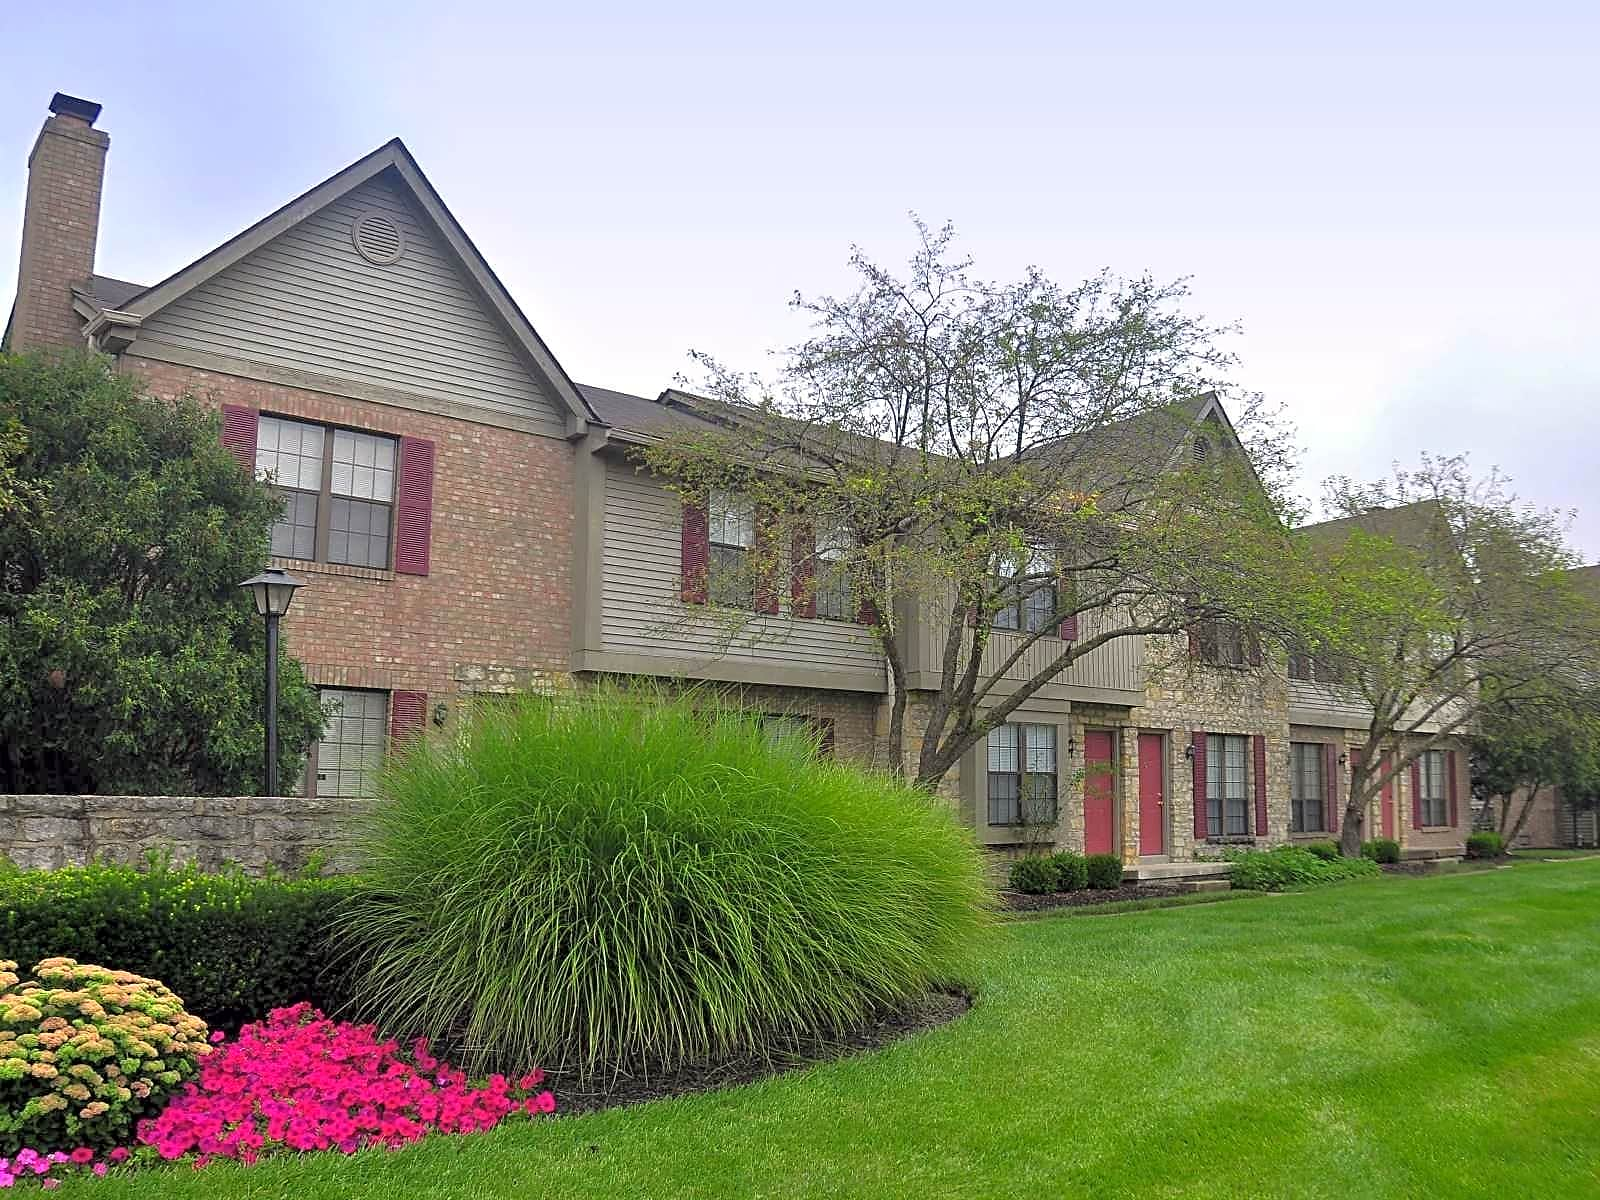 Abington Village Apartments - Dublin, OH 43016